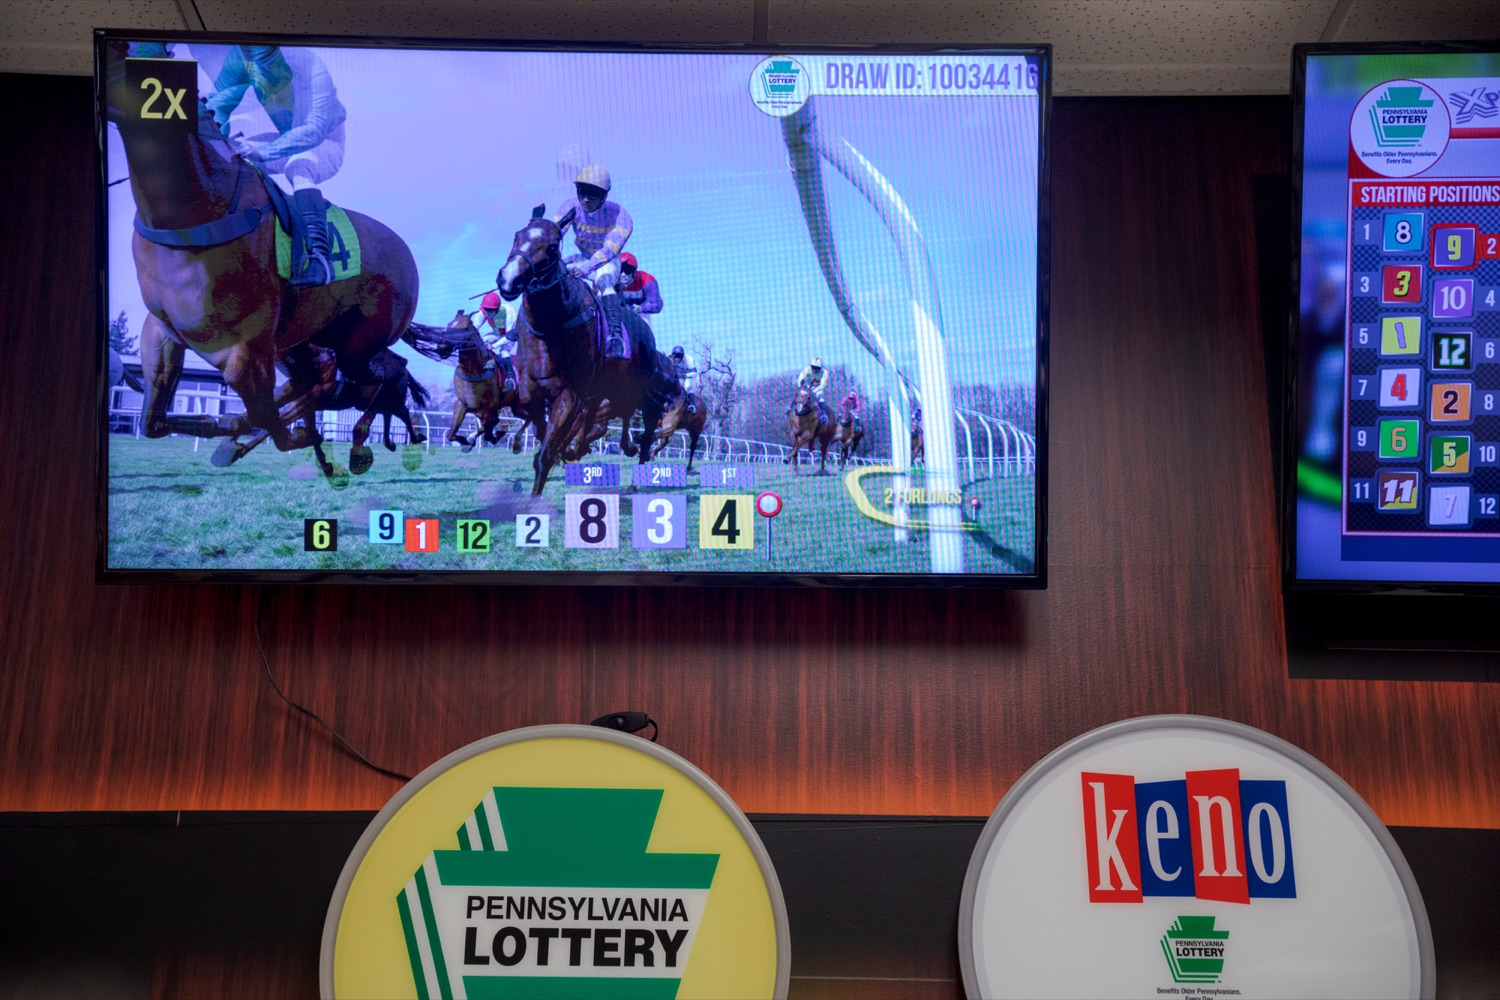 """<a href=""""http://filesource.abacast.com/commonwealthofpa/photo/17265_Lottery_Derby_Cash_NK_004.JPG"""" target=""""_blank"""">⇣Download Photo<br></a>The Pennsylvania Lottery today launched Derby Cash Horse Racing, a new and highly anticipated virtual horse racing game that will have players on the edge of their seats. Every five minutes, players have the chance to win up to $800,000 on a $1 play. Purchases can be made anywhere Lottery games are sold and races can be watched at nearly 2,000 of the Lotterys retailers, mainly at bars and restaurants."""